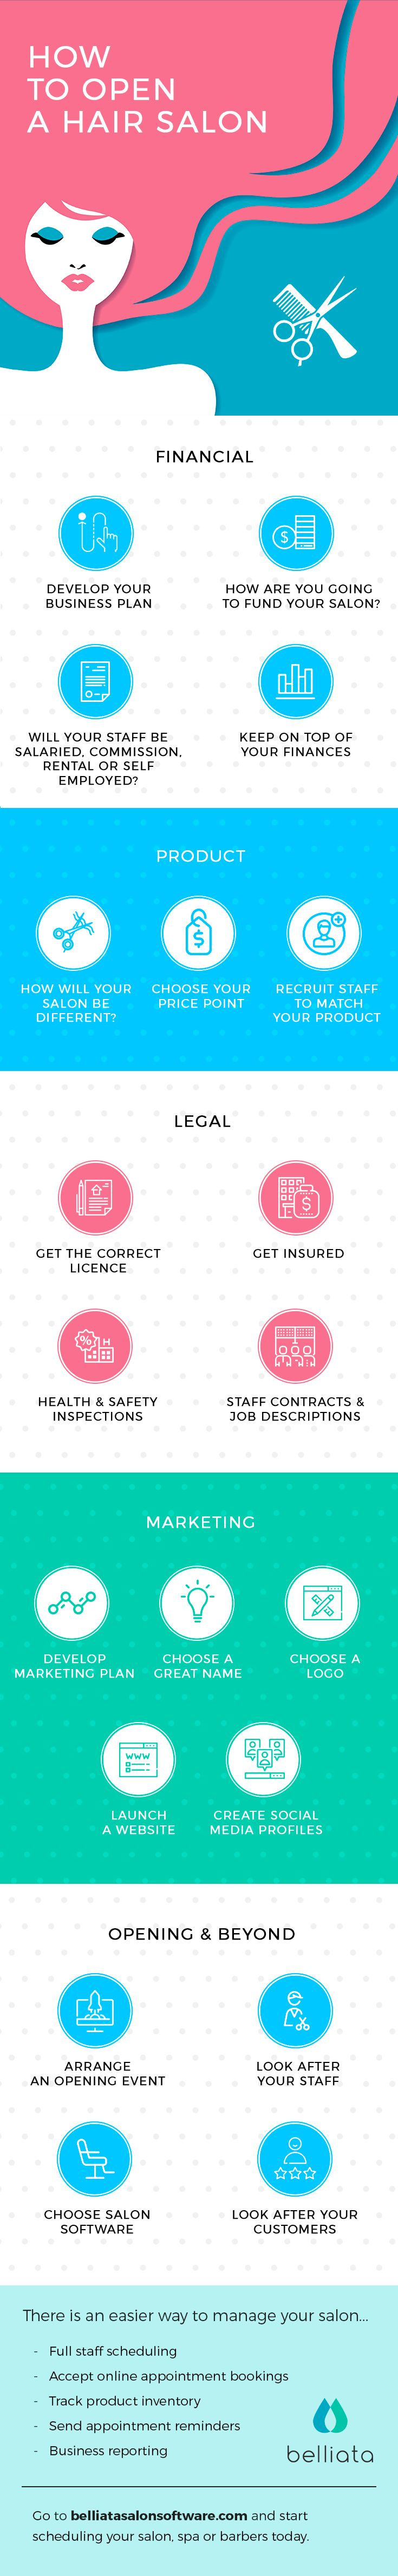 Looking for how to open a salon? @getbelliata have put together this infographic to help you create and inspire you to get started on your exciting journey.